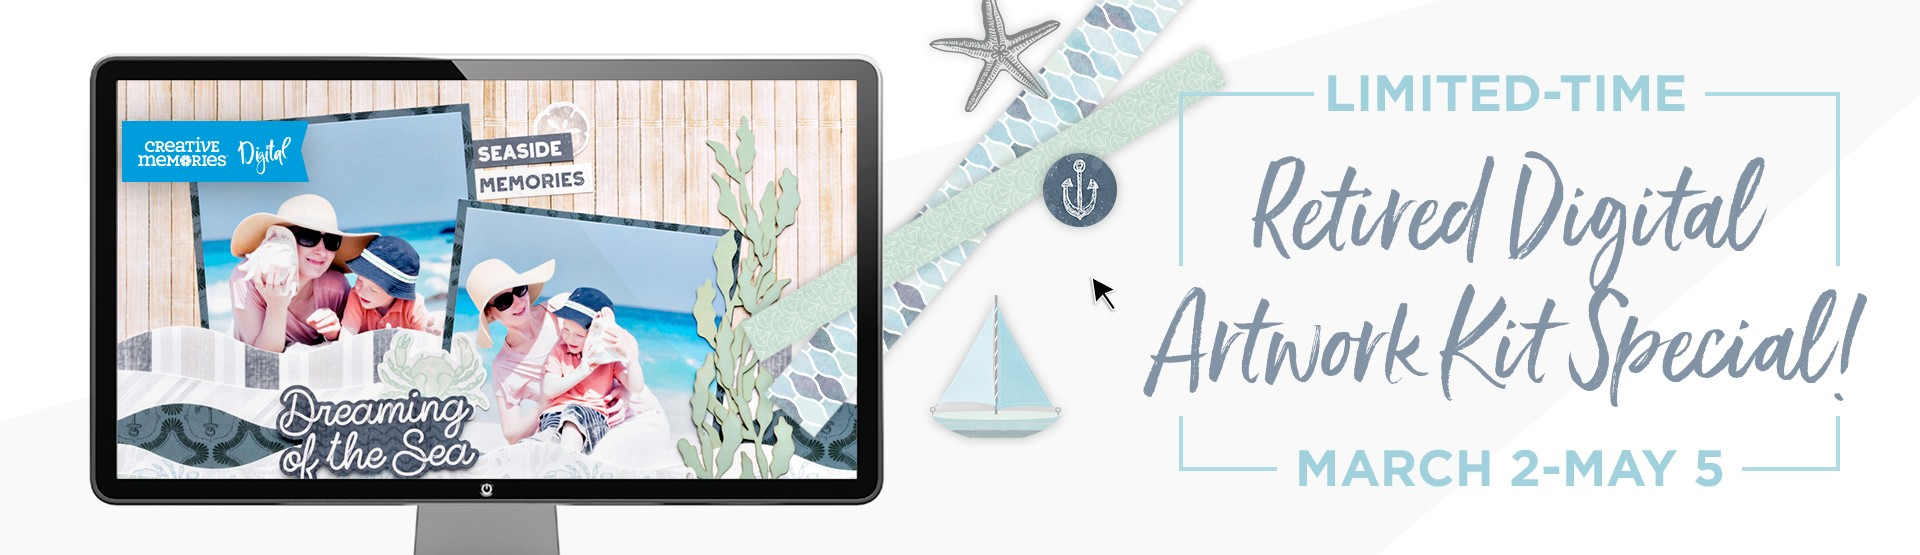 LIMITED-TIME: Retired Digital Artwork Kits Special